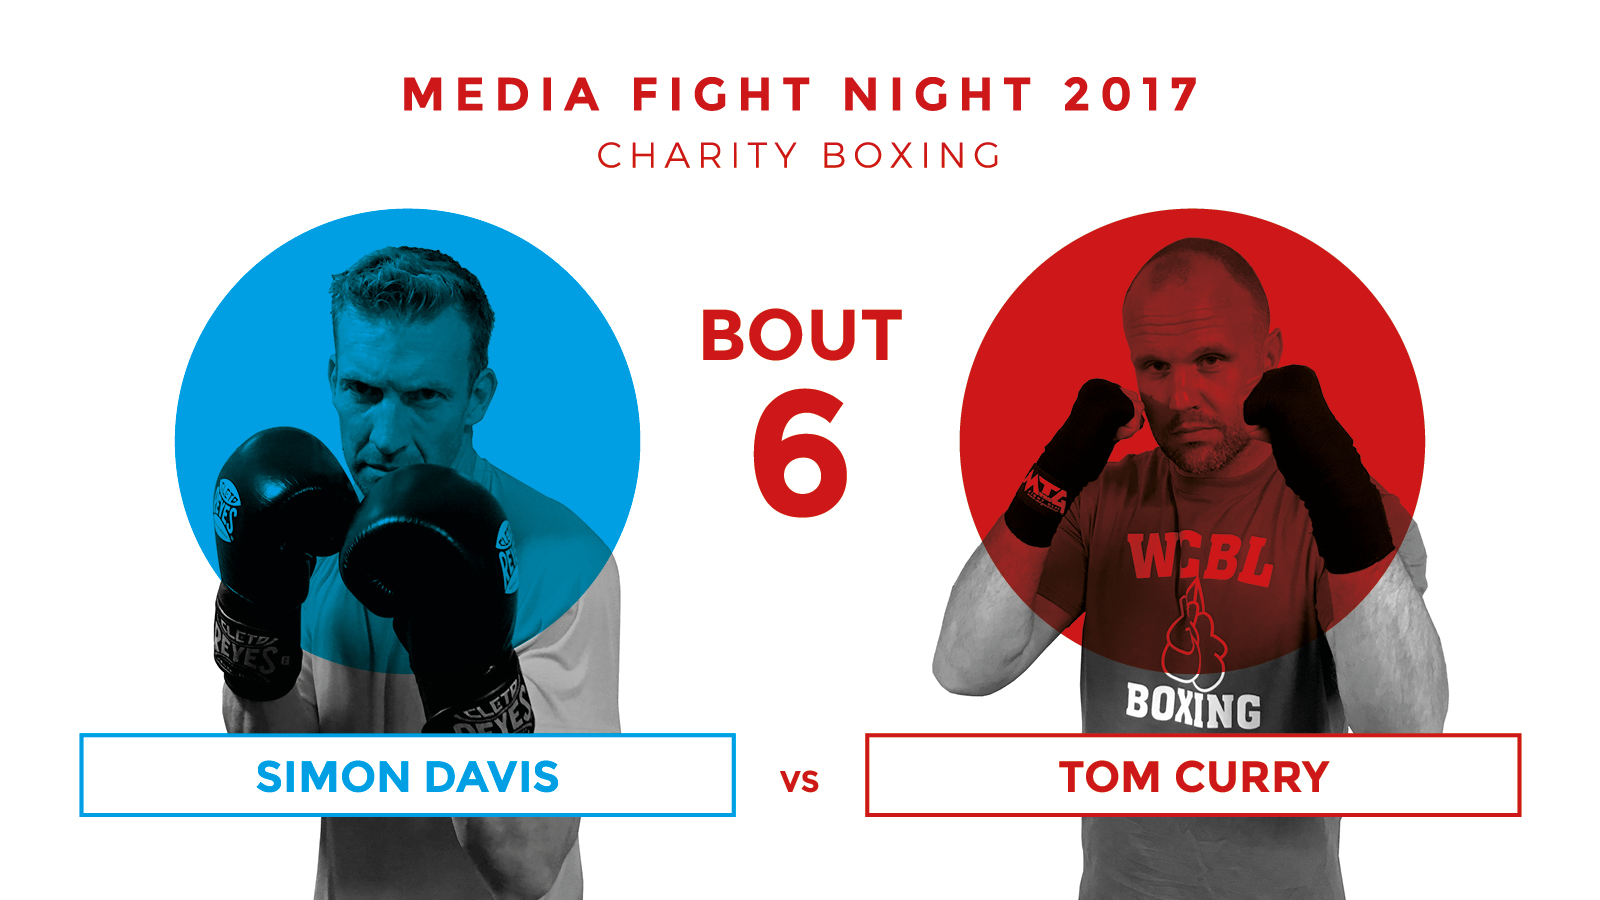 charity-boxing-designed-by-also-agency-bout-6.jpg